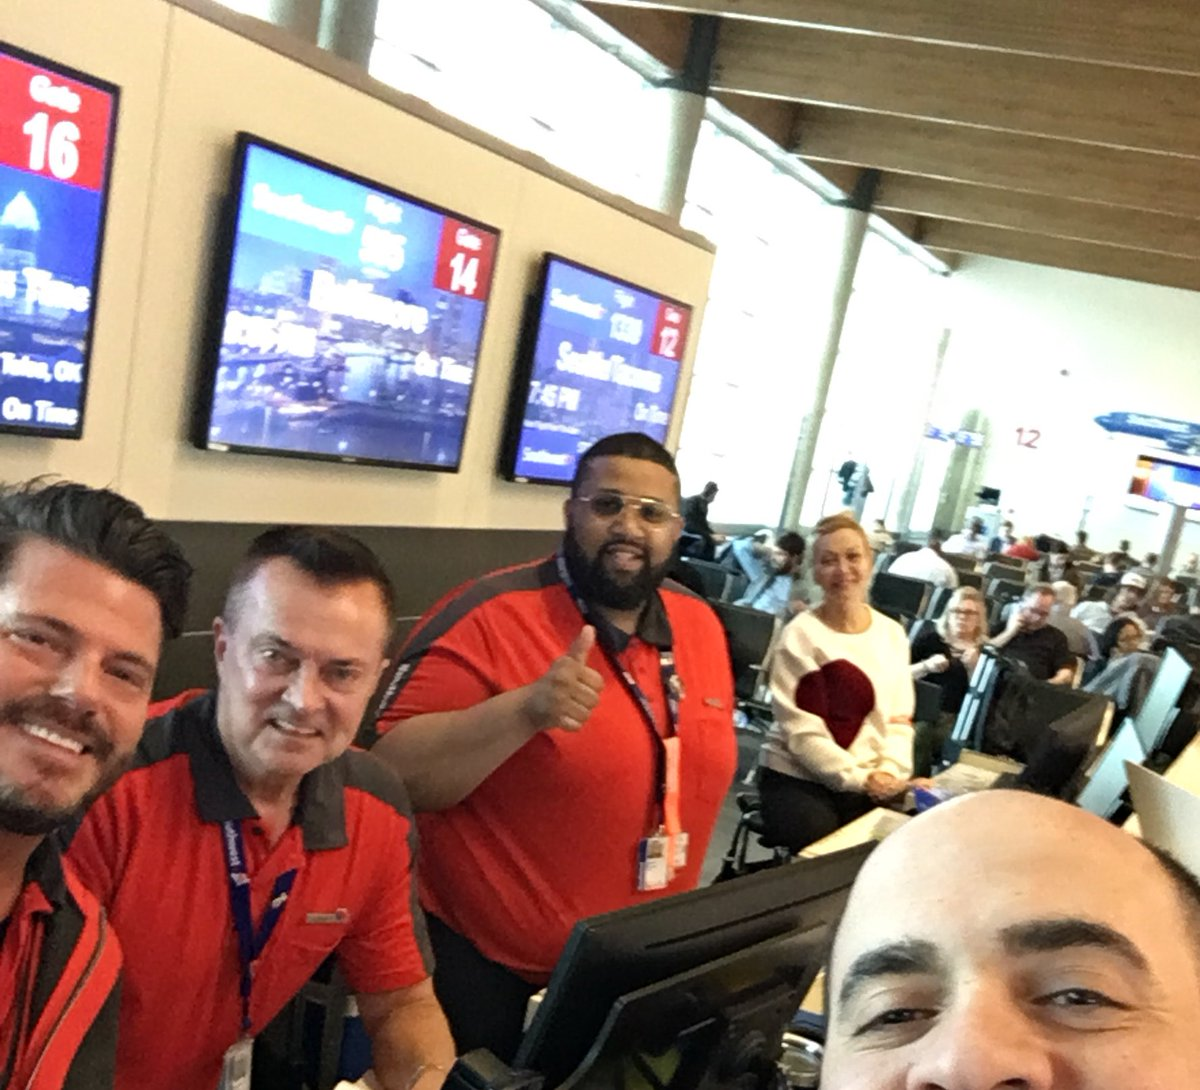 test Twitter Media - Dear @SouthwestAir, With all the delays and disruptions today at DAL, your team would have every right to be tired, frustrated, or rude. They have been none of those things. Y'all have a rockstar crew here. Thank you! #IFlySWA ♥️ https://t.co/F6FJOCFpTr